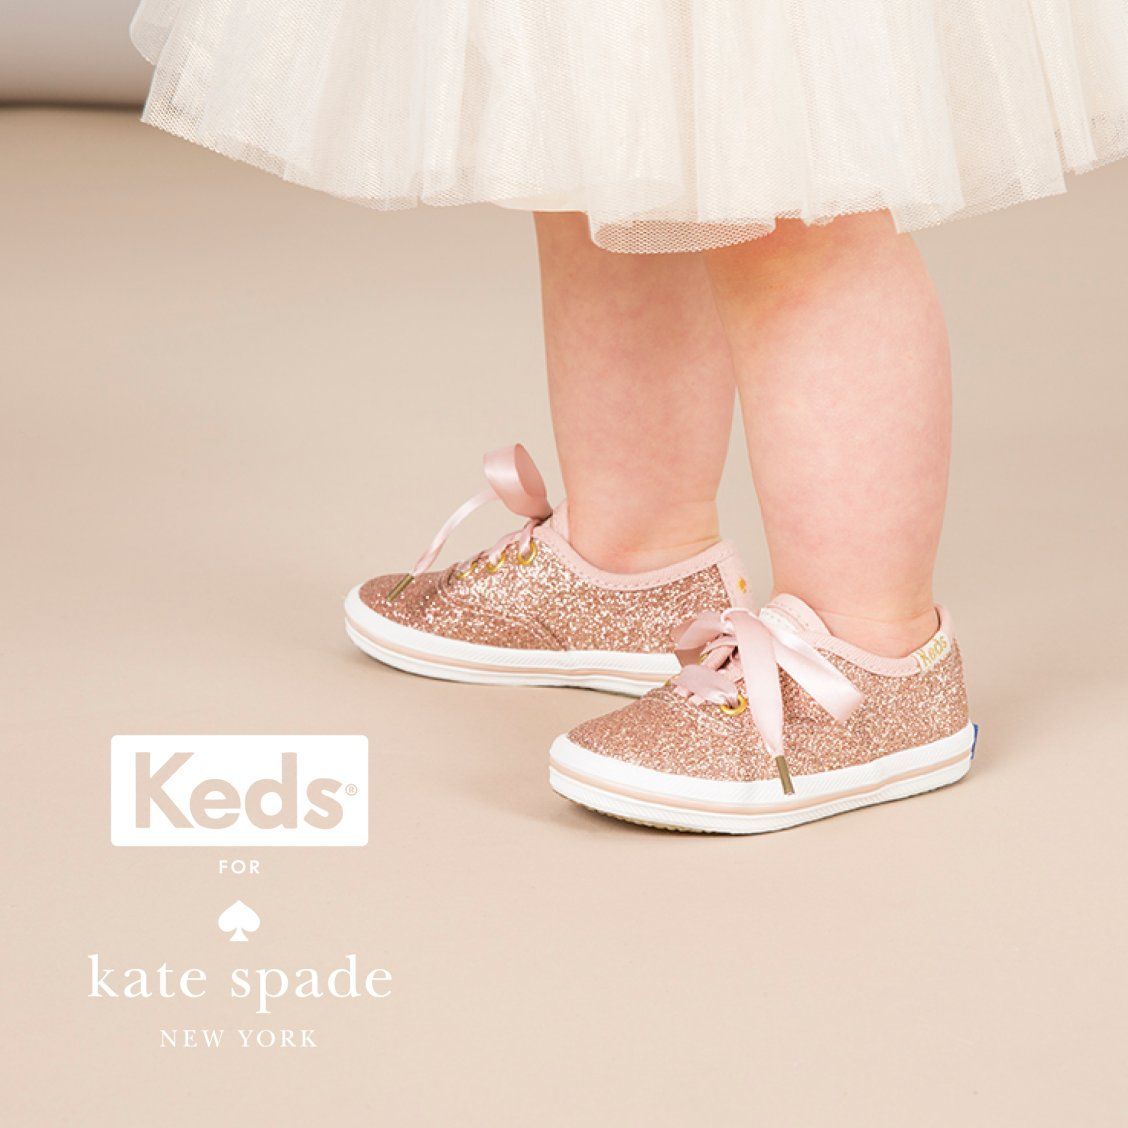 c2fb3883261c Meet the shoes on every girl s wish list this year. Keds for Kate Spade New  York.